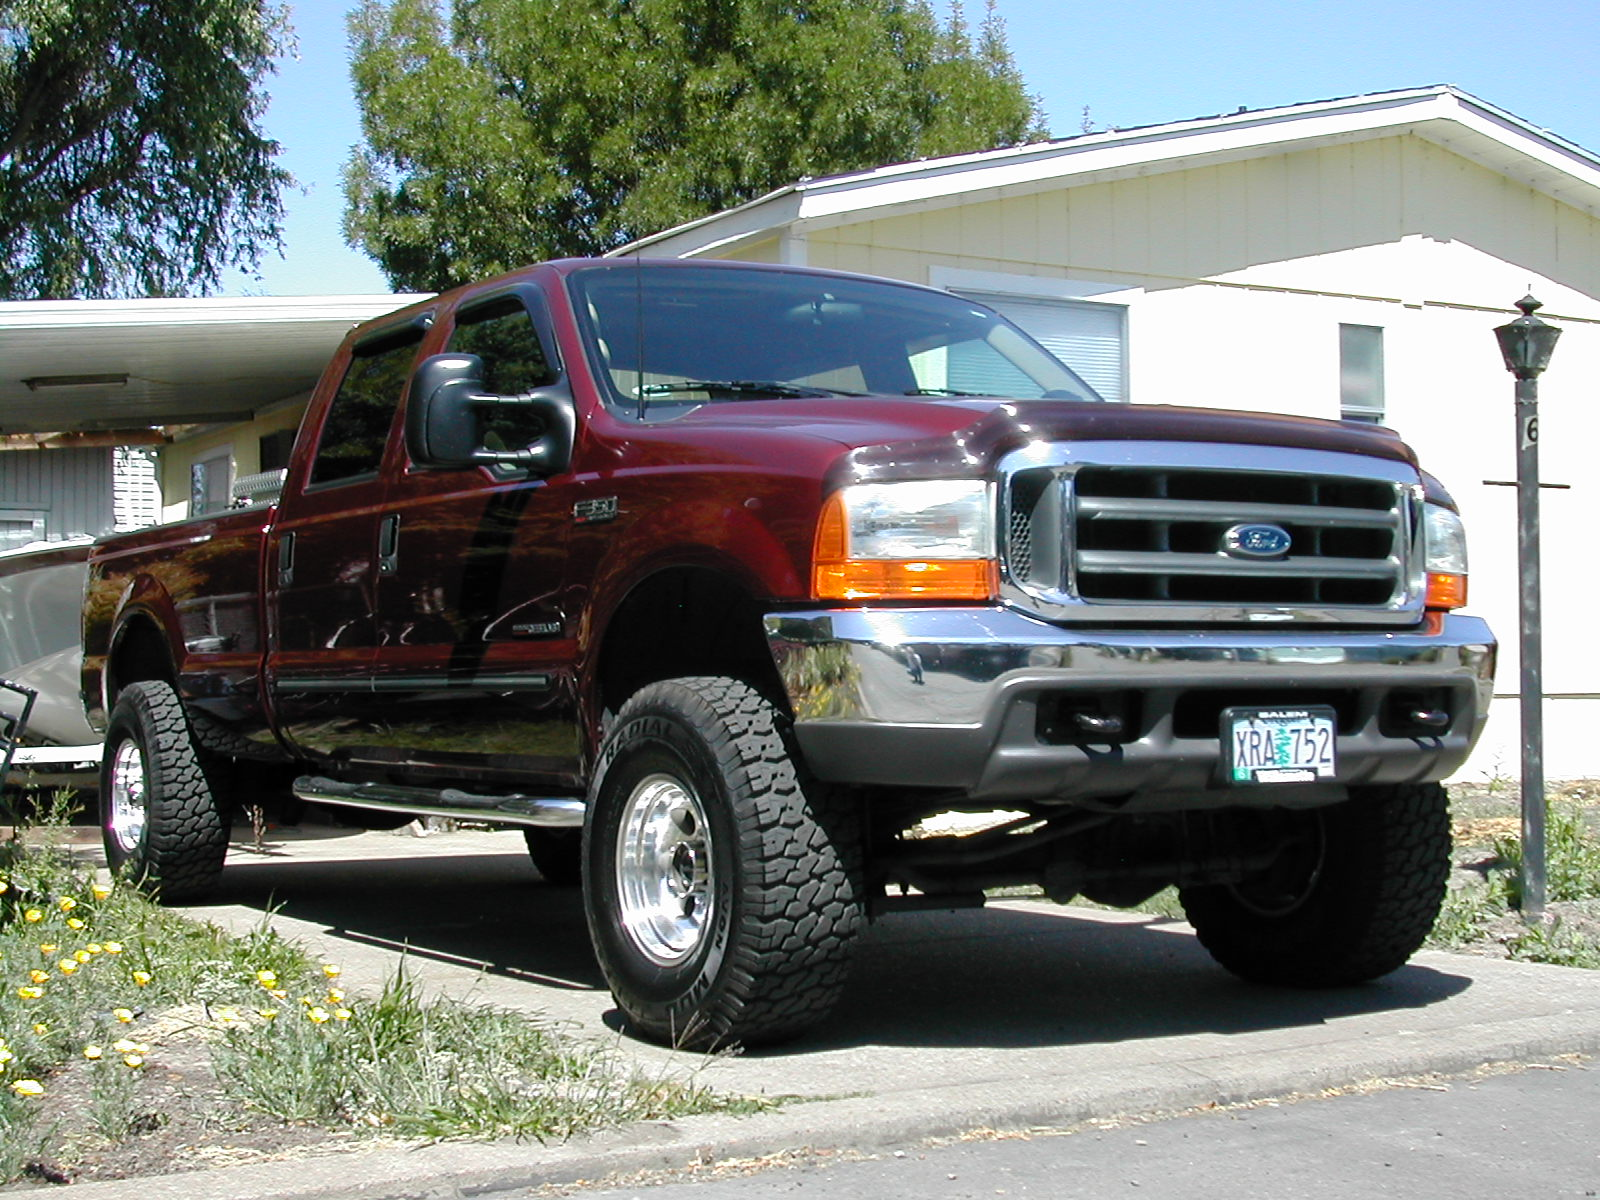 1999 Ford F250 Super Duty 1999 Ford F-250 Super Duty - Information and photos ...